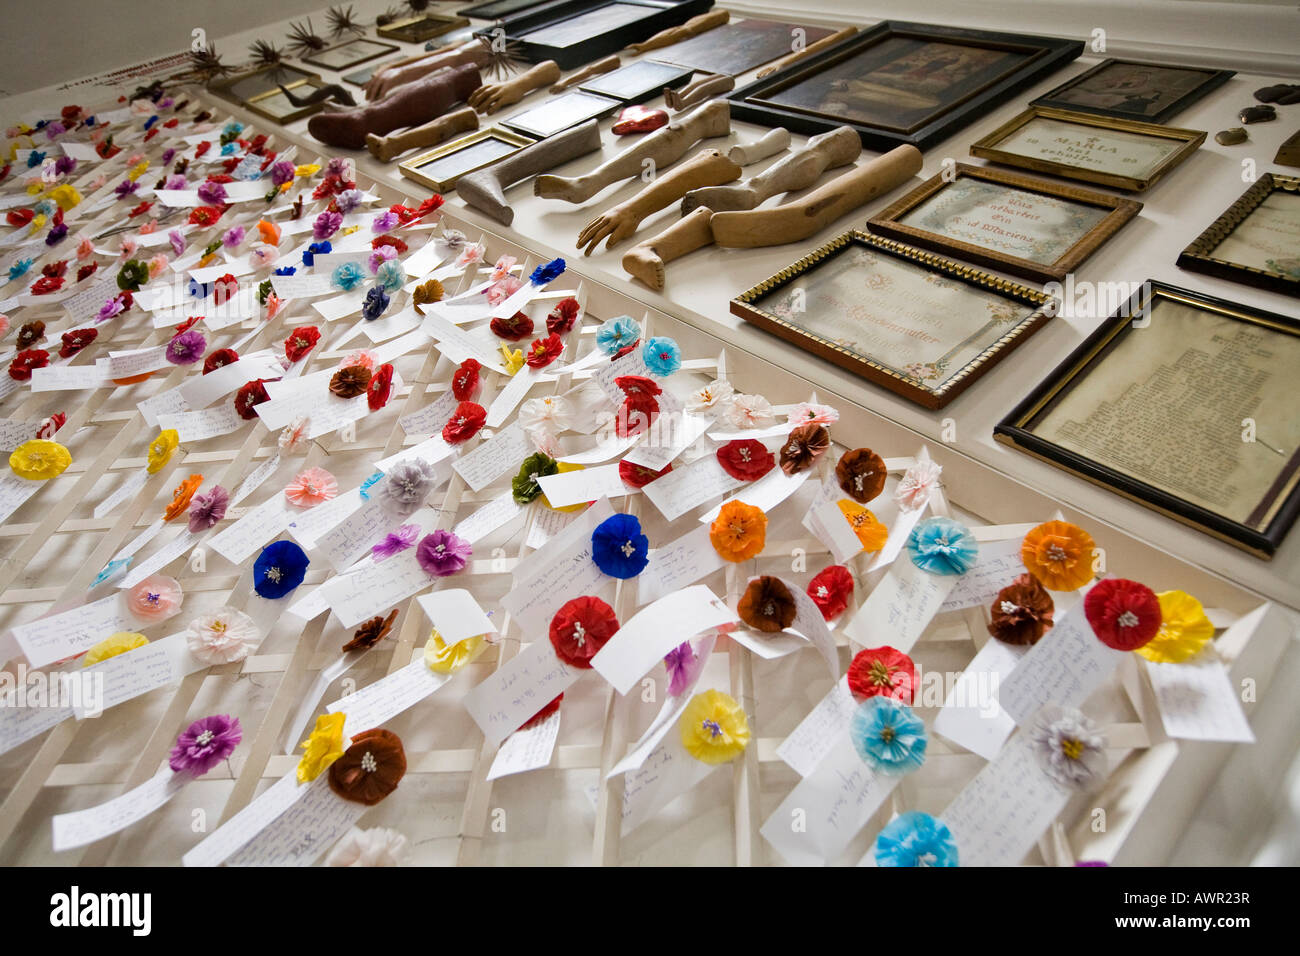 Intercessions, devotional objects left by pilgrims at the Convent of Saint John (St. Johann), Benedictine monastery - Stock Image